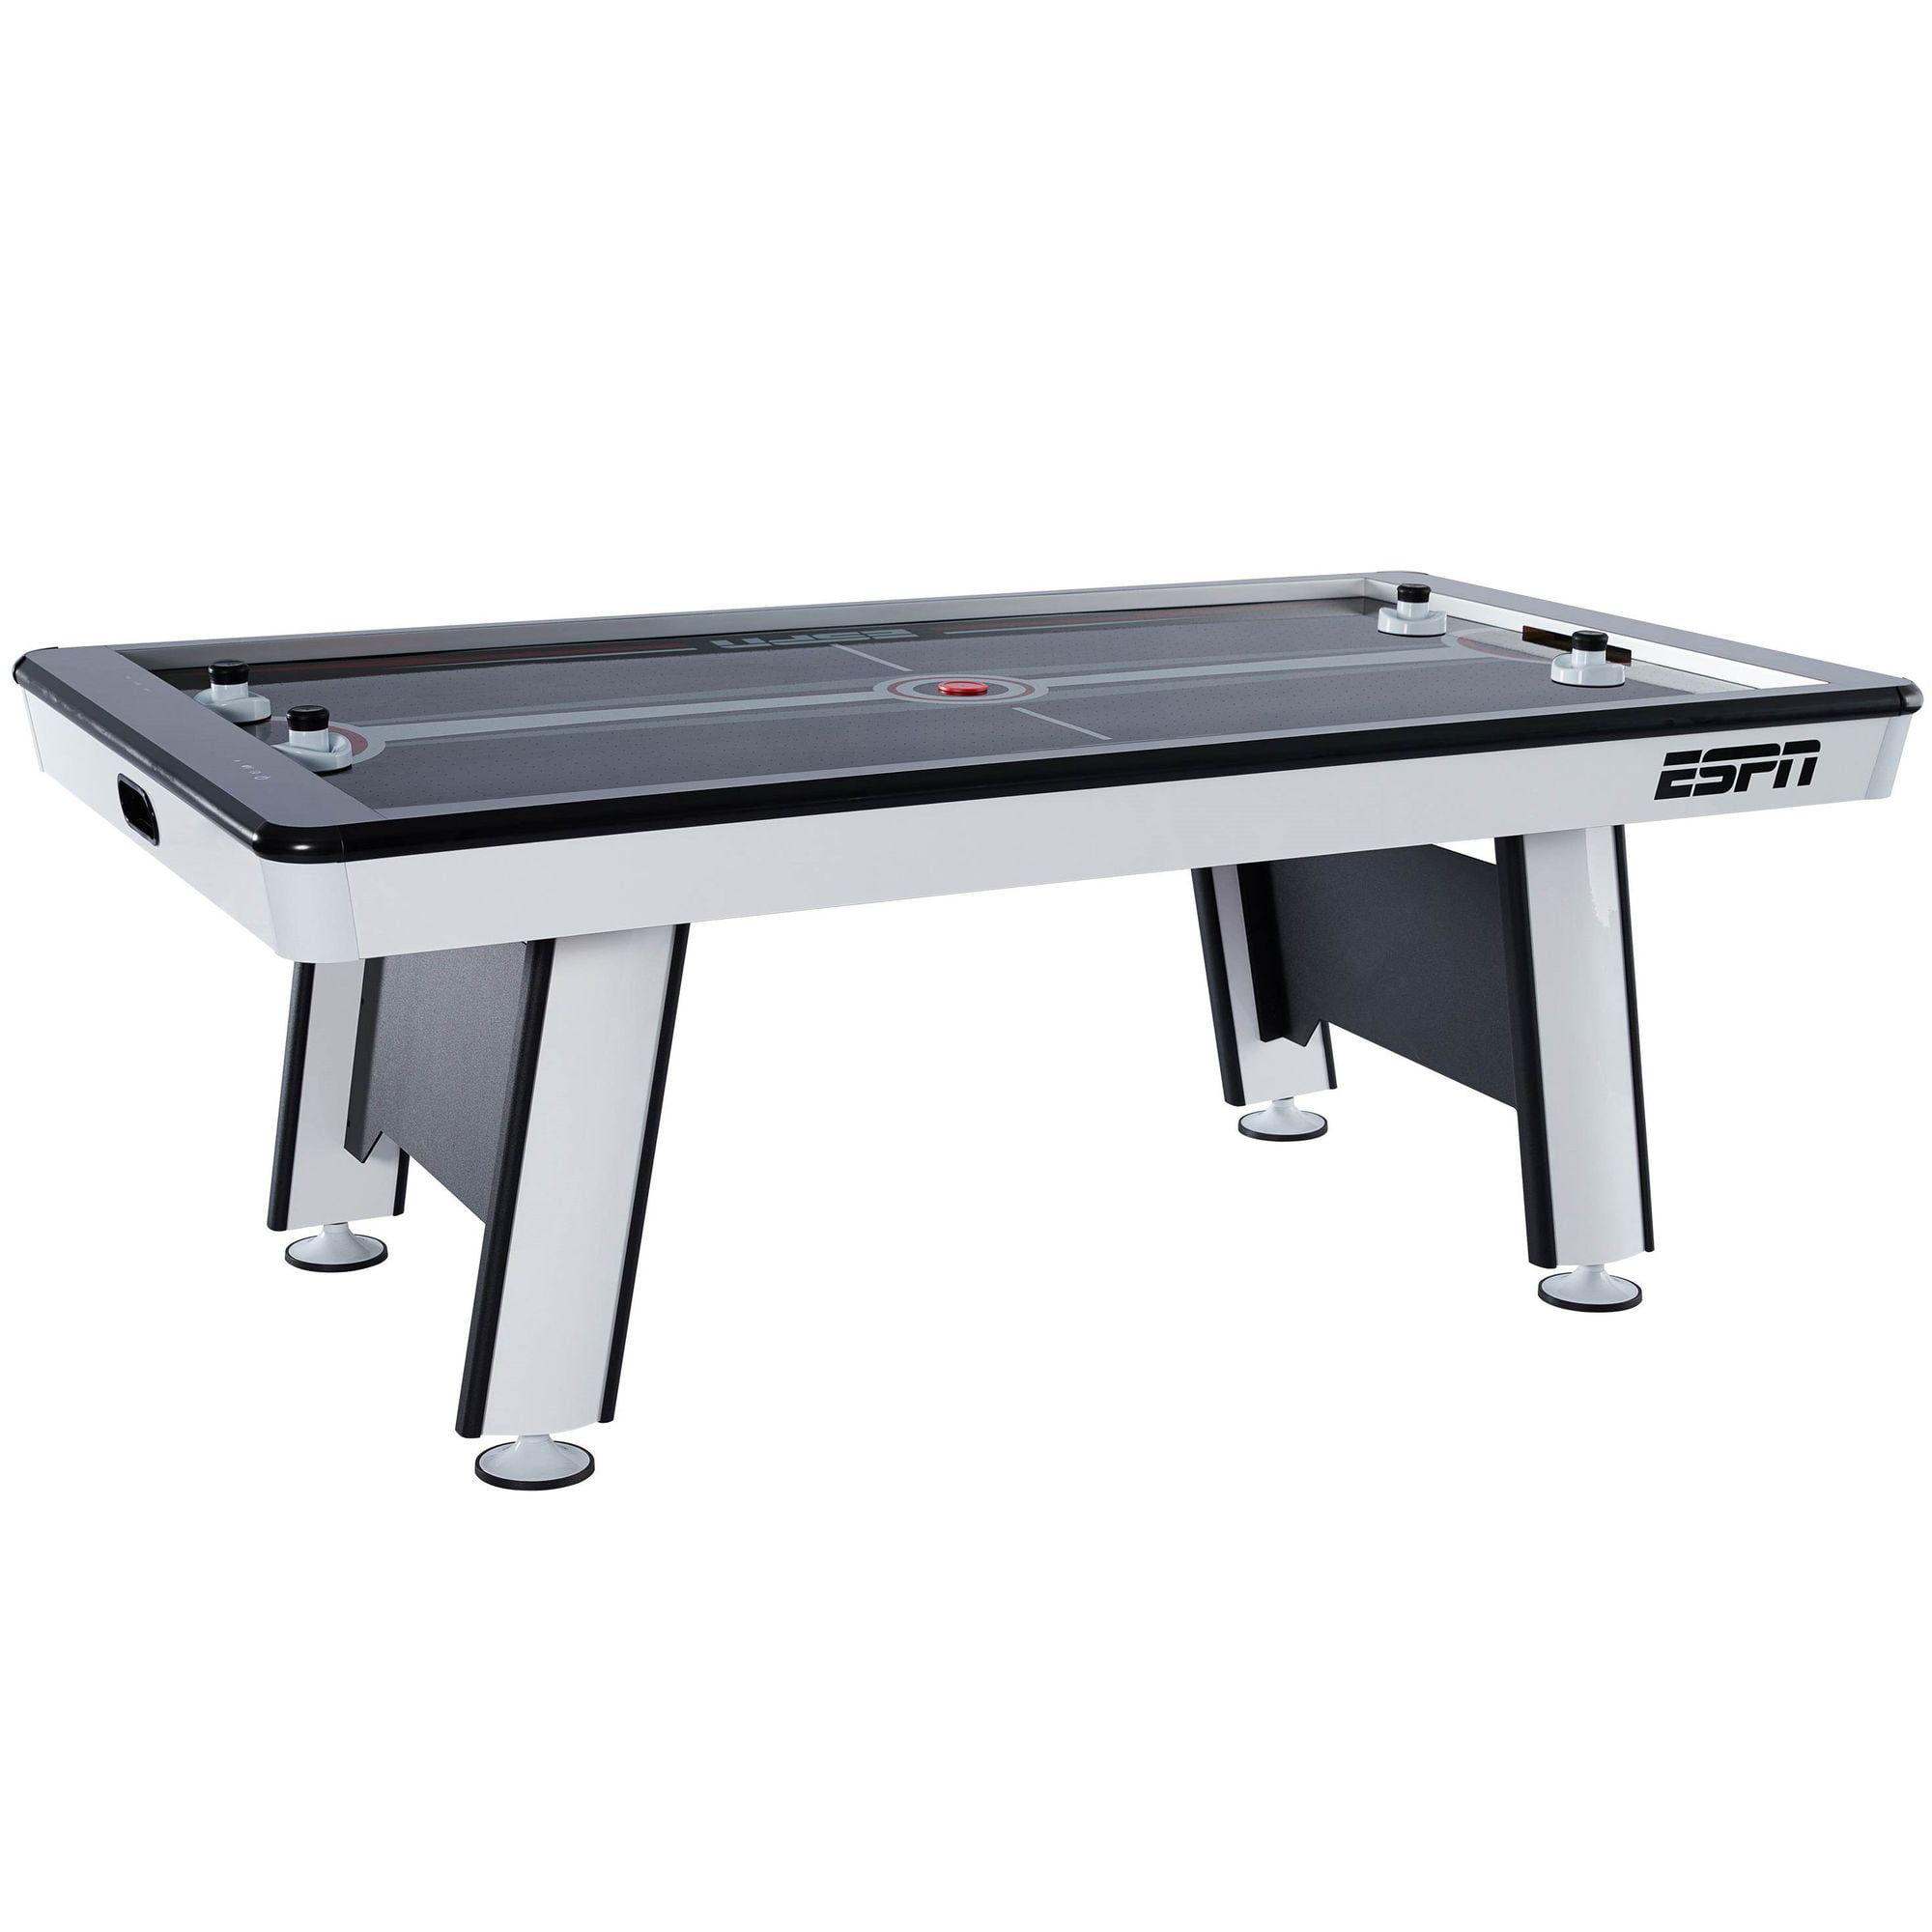 Air Hockey Table For Kids Adults Indoor Games Electronic Game 48 And Accessories For Improving Blood Circulation Air Hockey